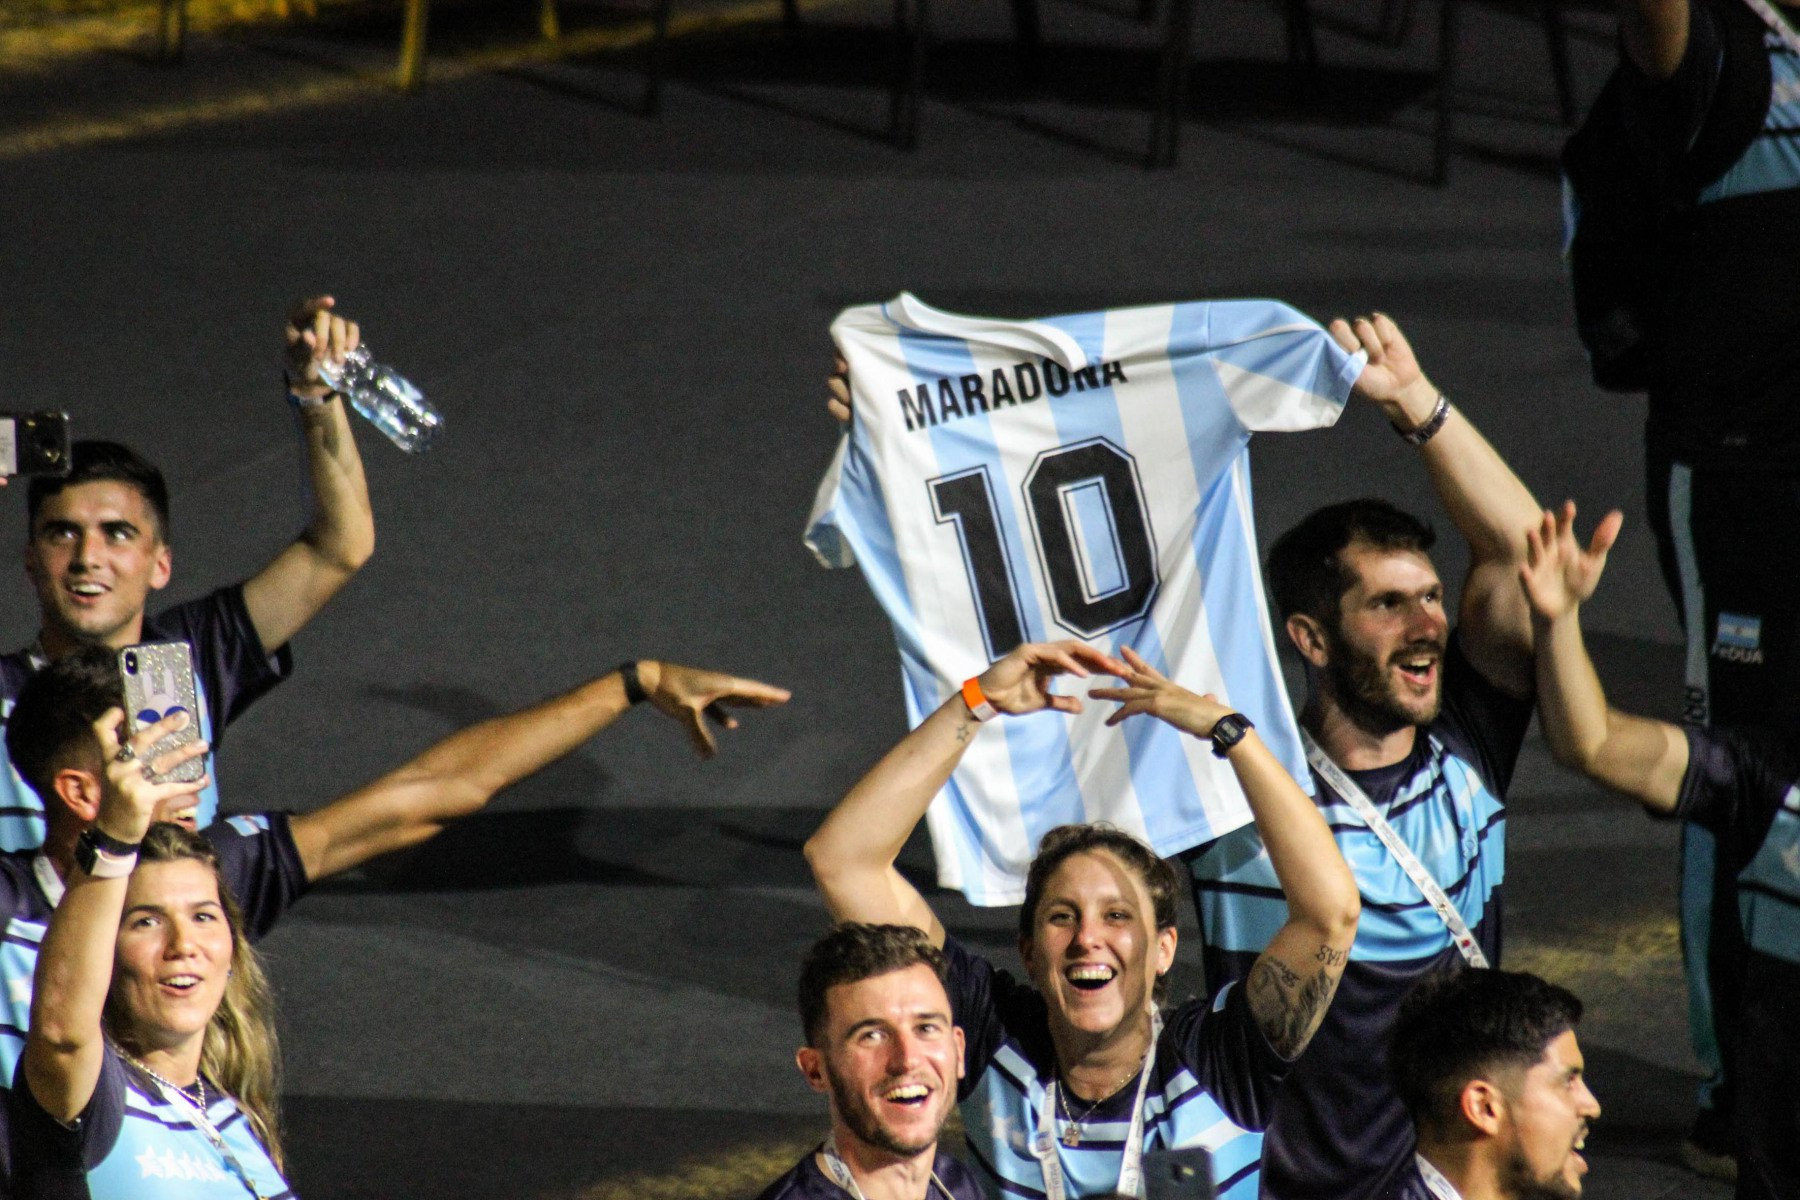 The Argentinian team held aloft a Diego Maradona shirt when they entered the stadium during the Naples 2019 Opening Ceremony ©Naples 2019